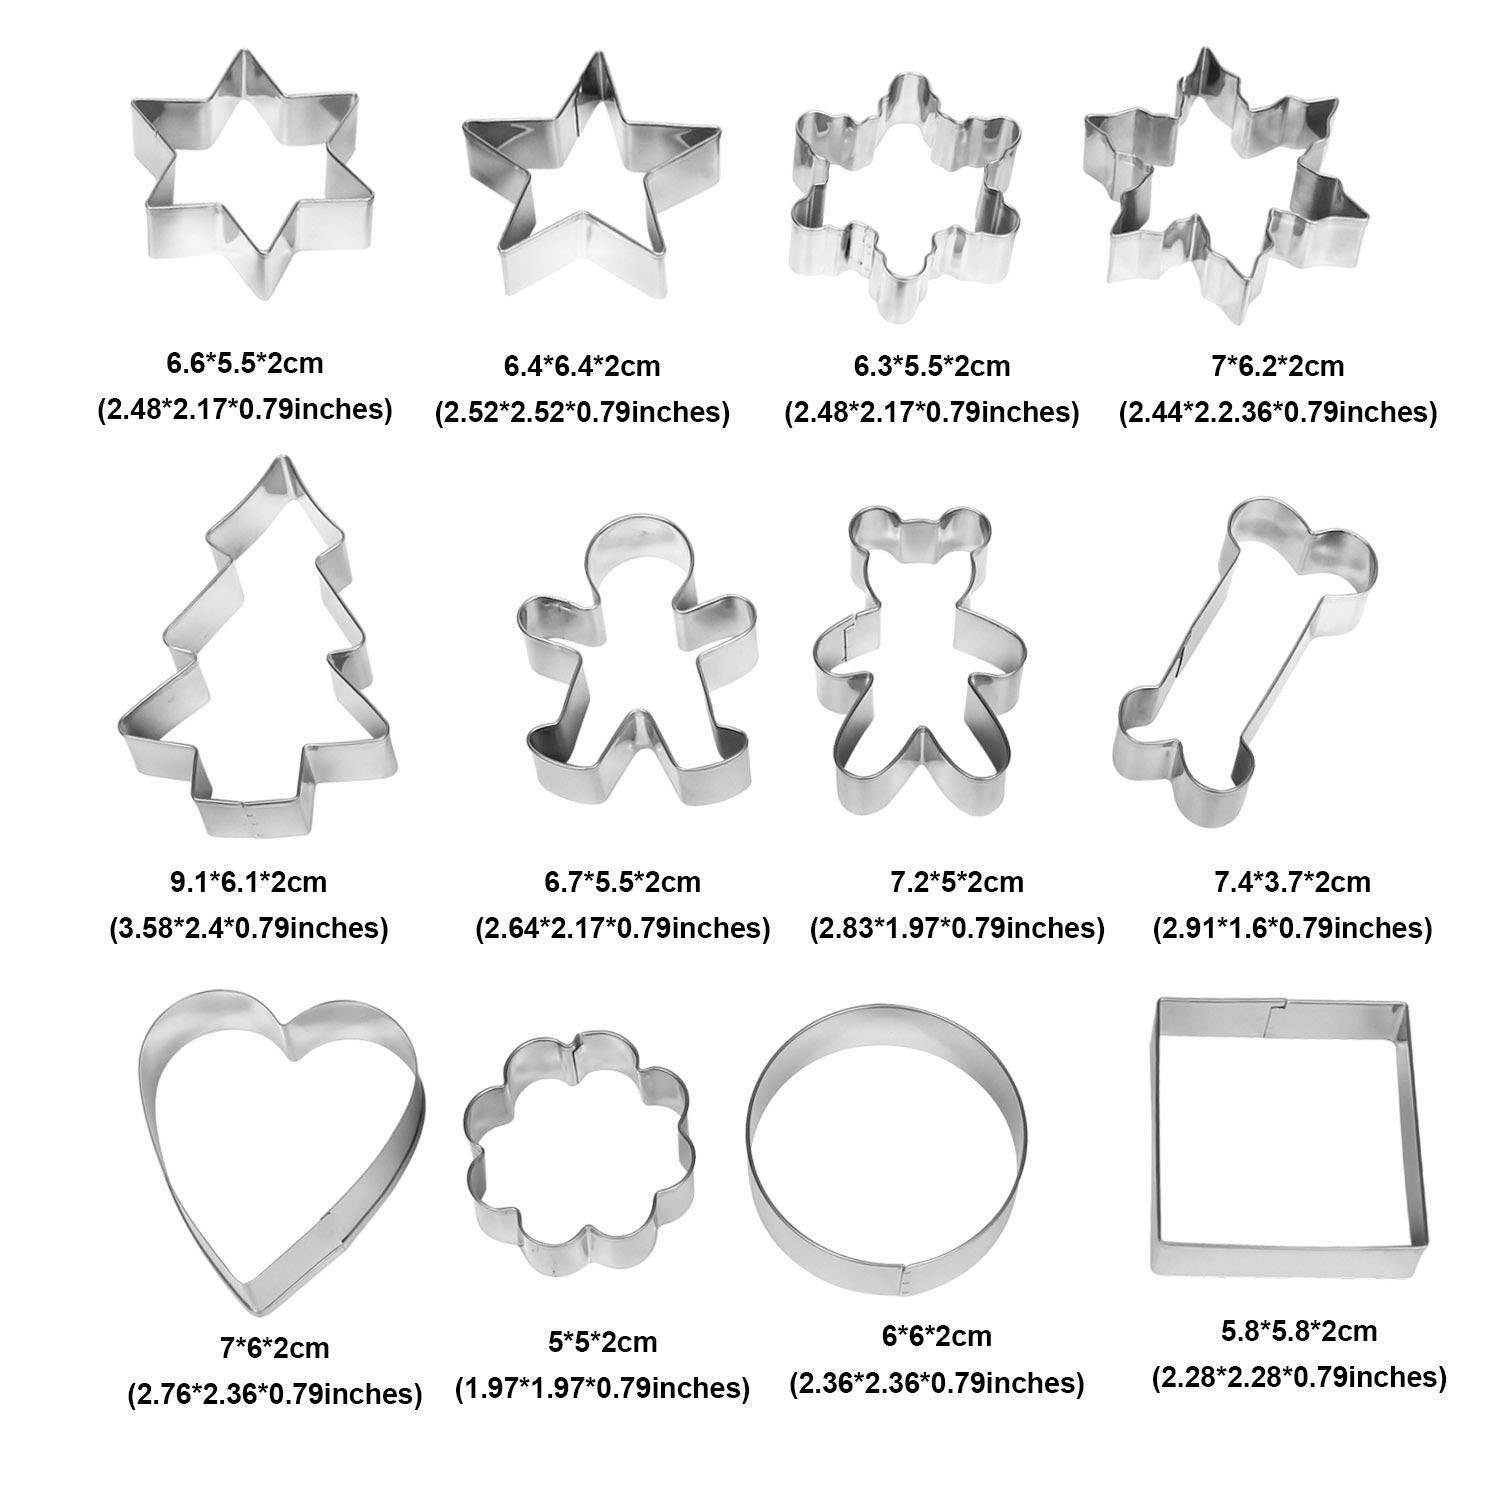 Heart Flower Bone Round Snowflake Square Shapes Stainless Steel Biscuit Cutters Sugarcraft /& Cake Decoration Icing Cookie Mould for Cookies esafio Set of 12 Cookie Cutters